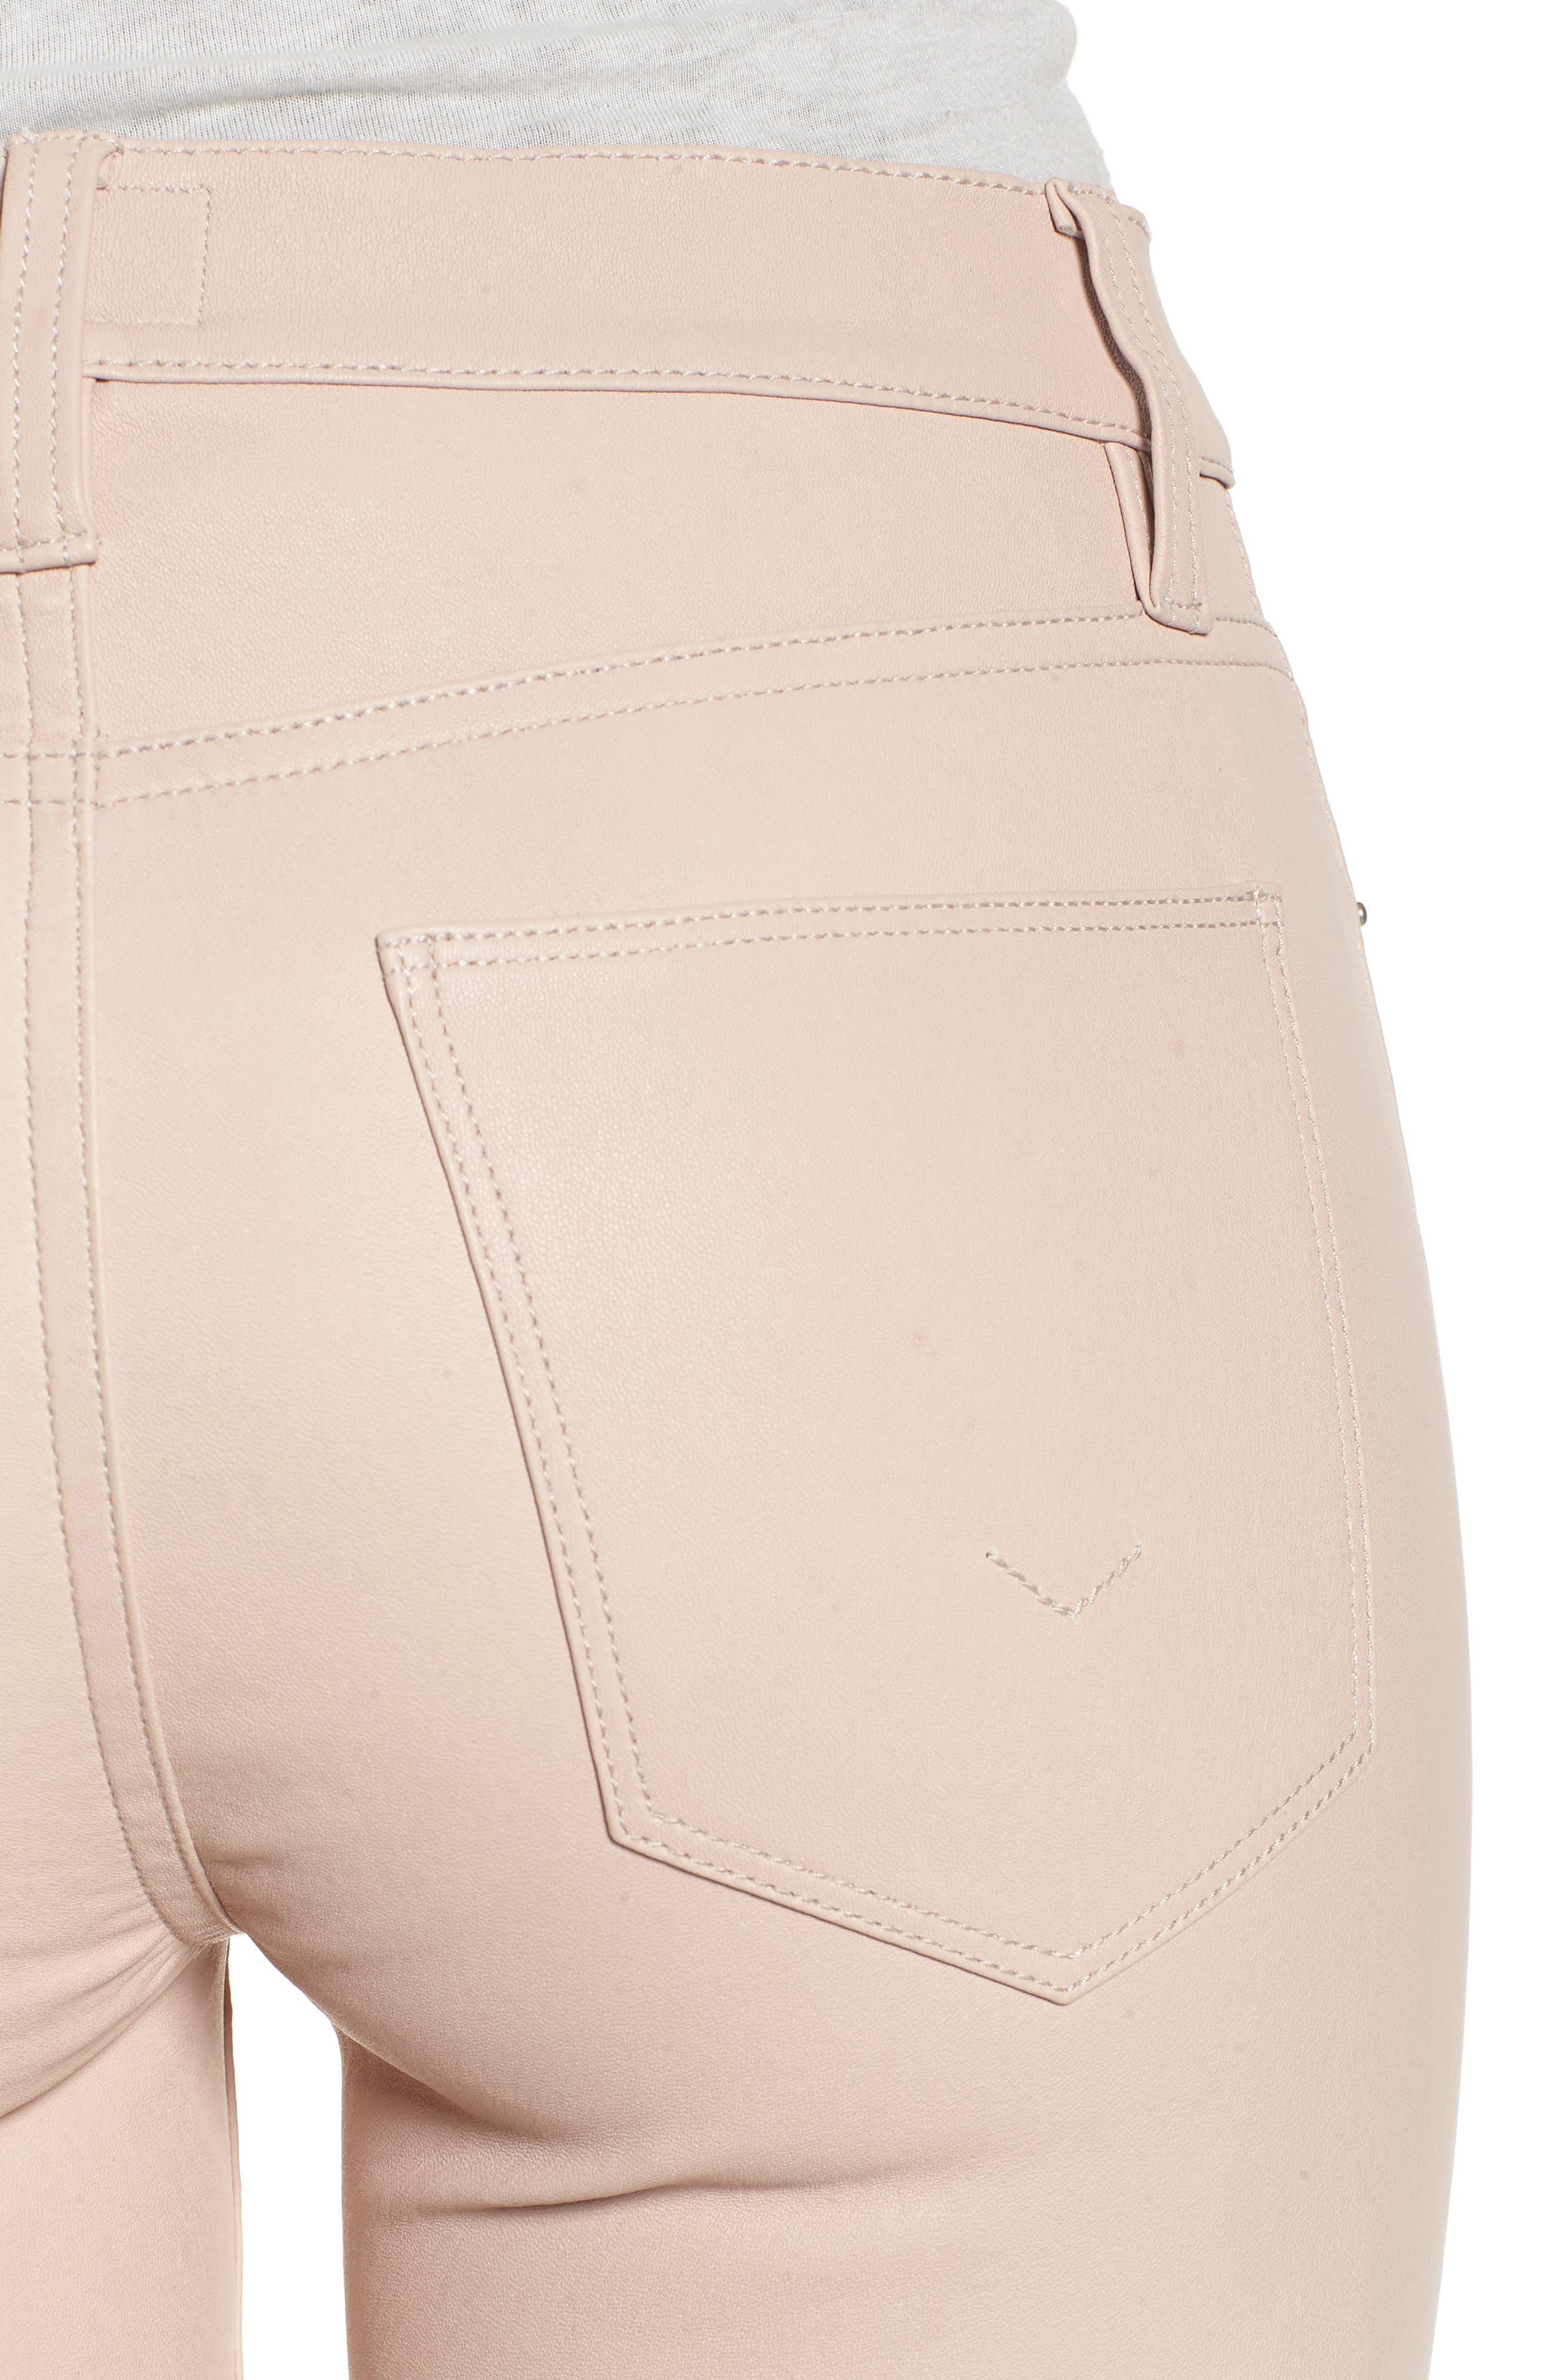 Barbara High Waist Ankle Skinny Leather Jeans,                             Alternate thumbnail 4, color,                             BLUSHING